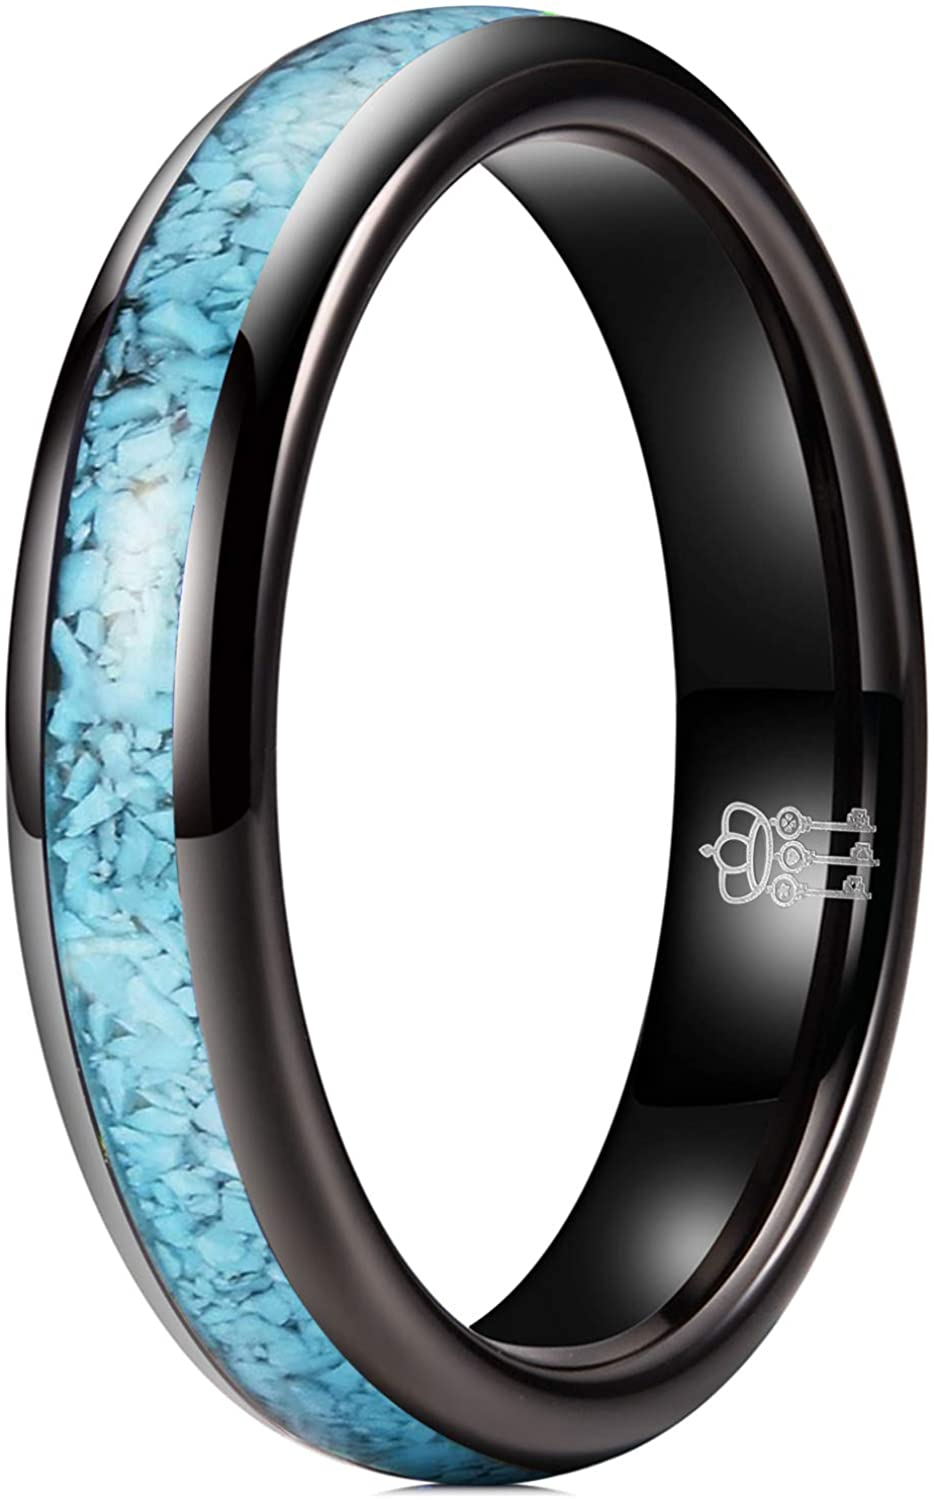 THREE KEYS JEWELRY Mens Womens Tungsten Ring 4mm 6mm 8mm Turquoise Granules Inlay Silver Black Rose Gold Wedding Band